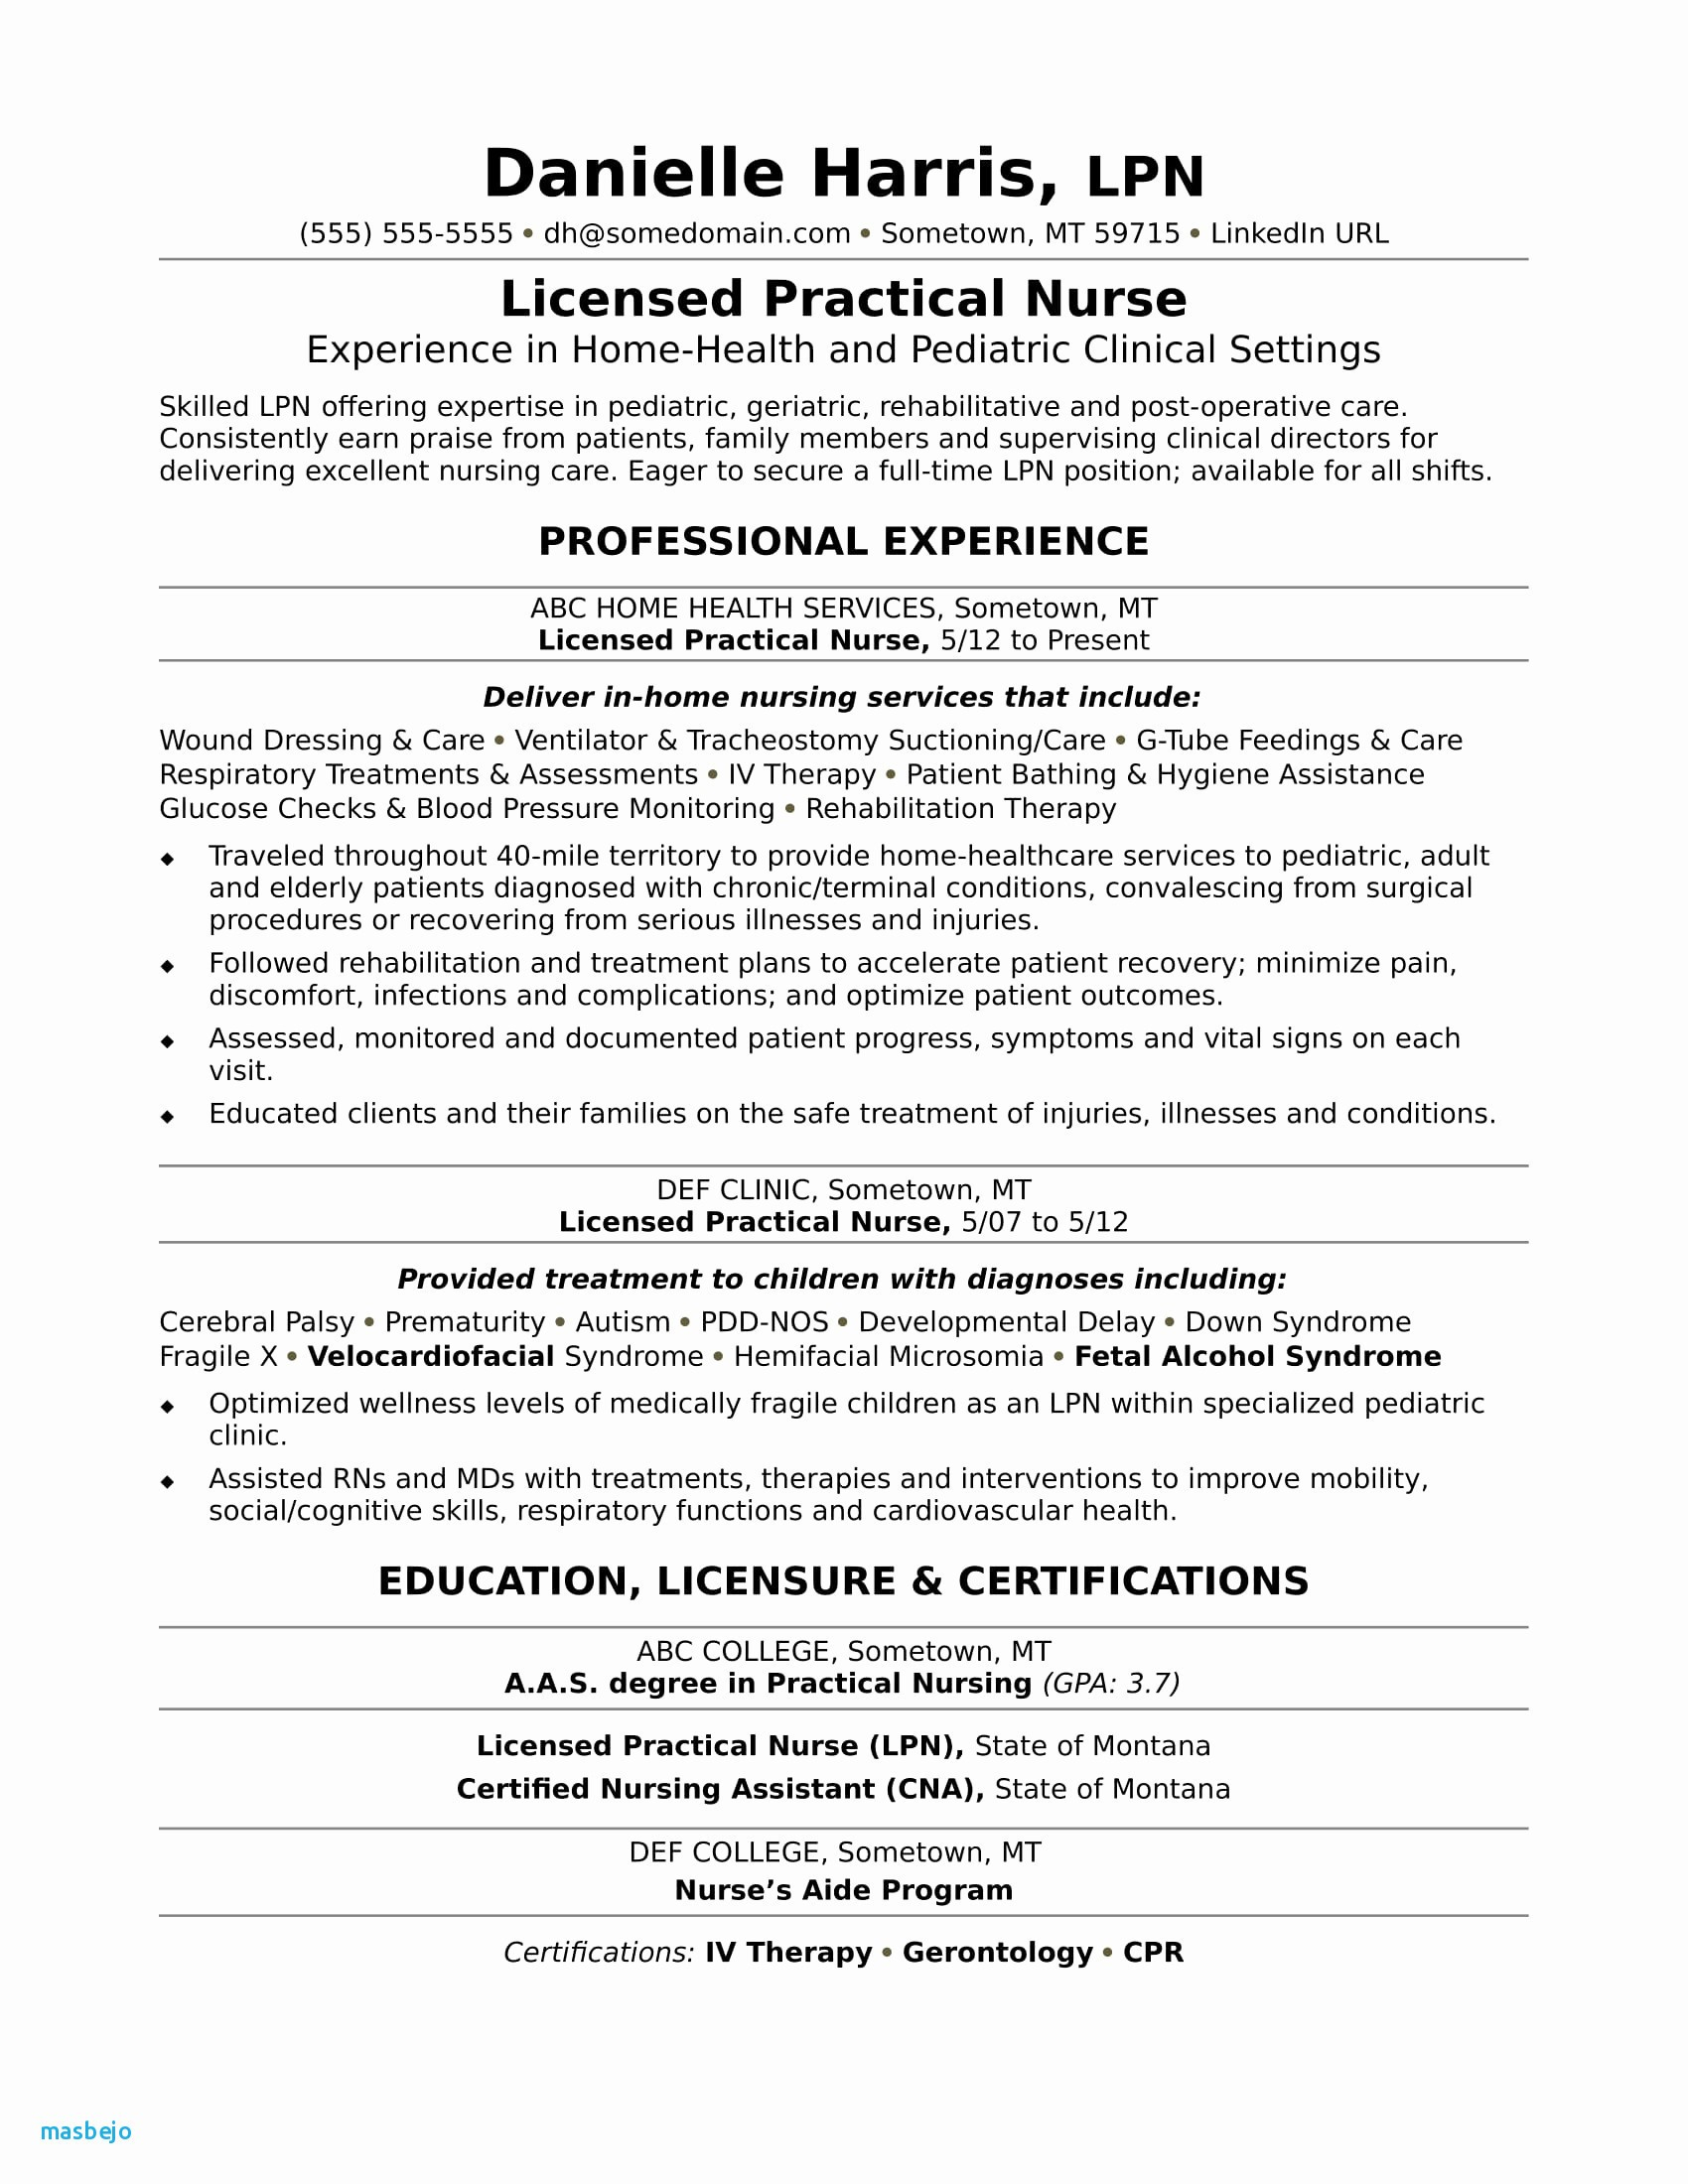 Resume for Med Surg Nurse - Sample Resume for A New Registered Nurse Resume Resume Examples